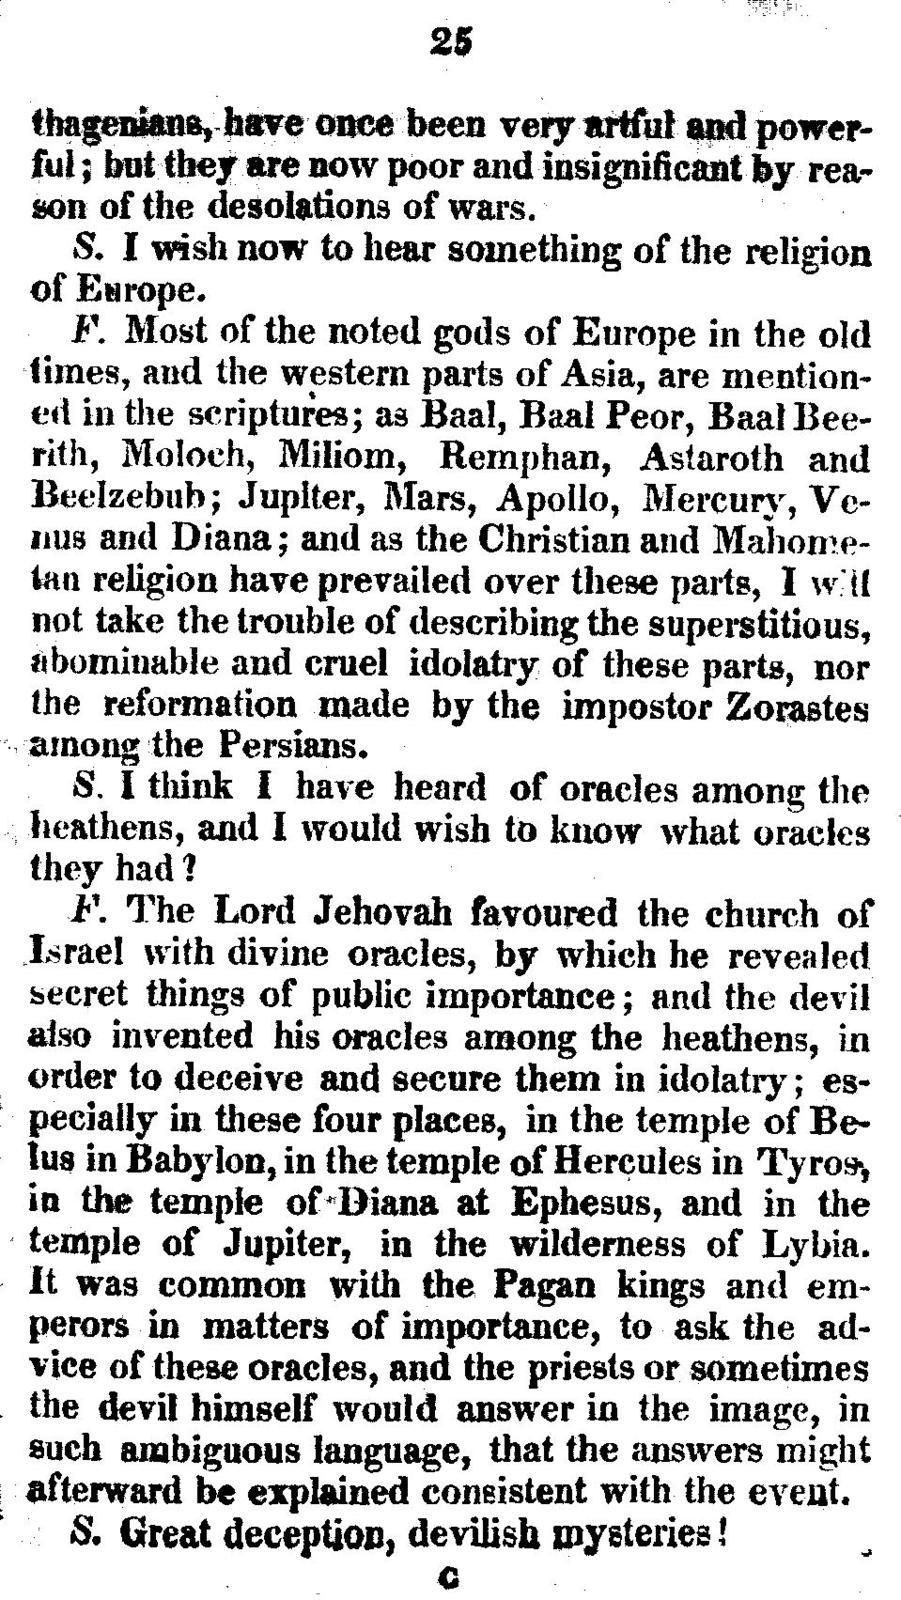 The Richmond alarm: a plain and familiar discourse in the form of a dialogue between a father and his son; in three parts: I. Containing introduction, with many instructive hints and observations upon many of the most remarkable occurrences, wonders and curiosities in history; with a short account of the four religions of the world, viz., Pagan, Jewish, Mahometan and Christian religion; and a brief account of the Greek church, Popish church, and Protestant church. II. An account of the burning of the theatre in Richmond, December 26, 1811; with observations upon the nature and effects of stage plays, masquerades, balls, puppet shows, horse races, and gambling. III. Reflections upon that conflagration; with a solemn application to people of every rank and character ...